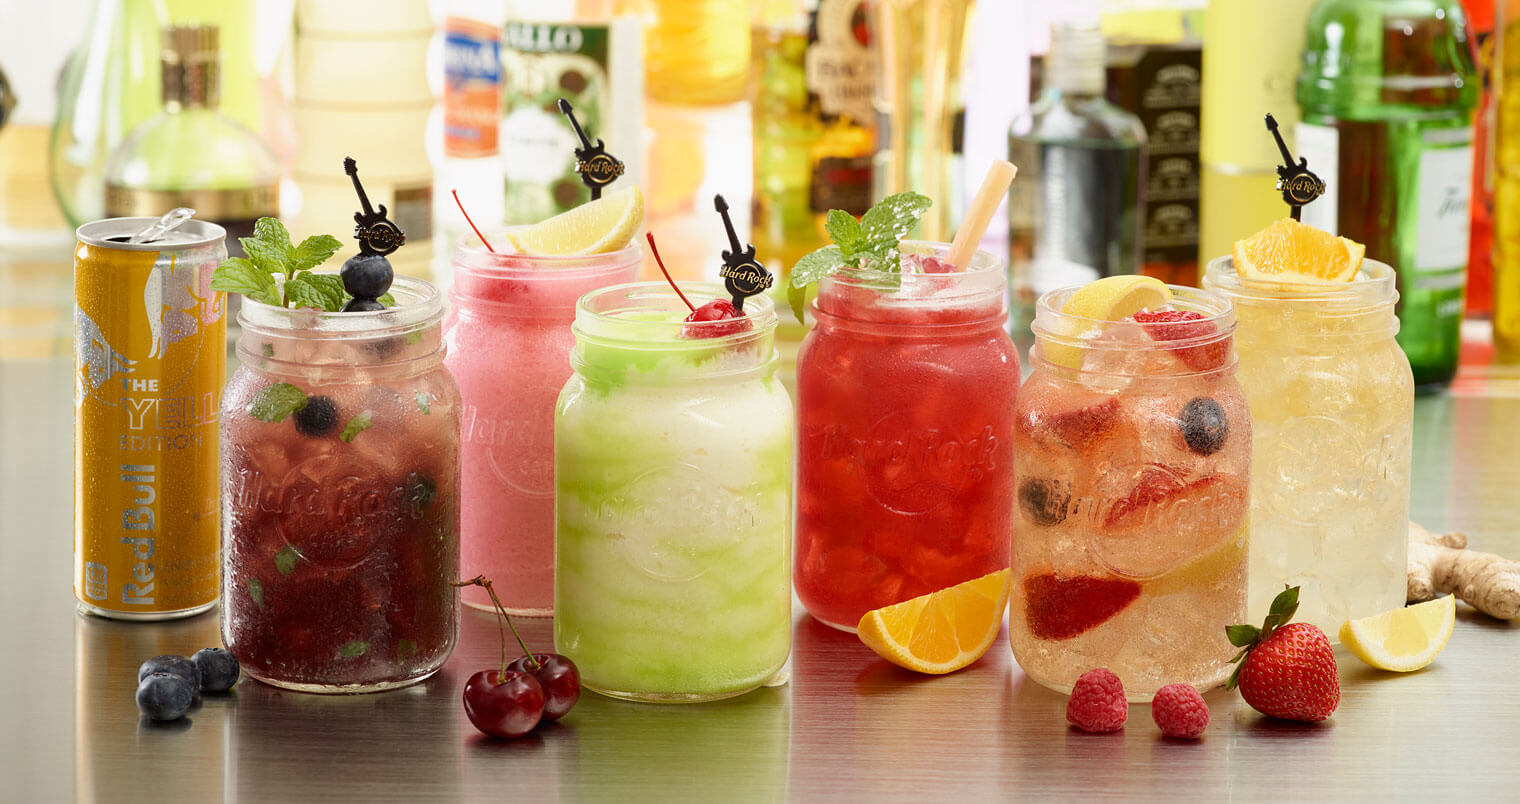 Summertime Mason Jar Cocktails from Hard Rock Cafe, featured image